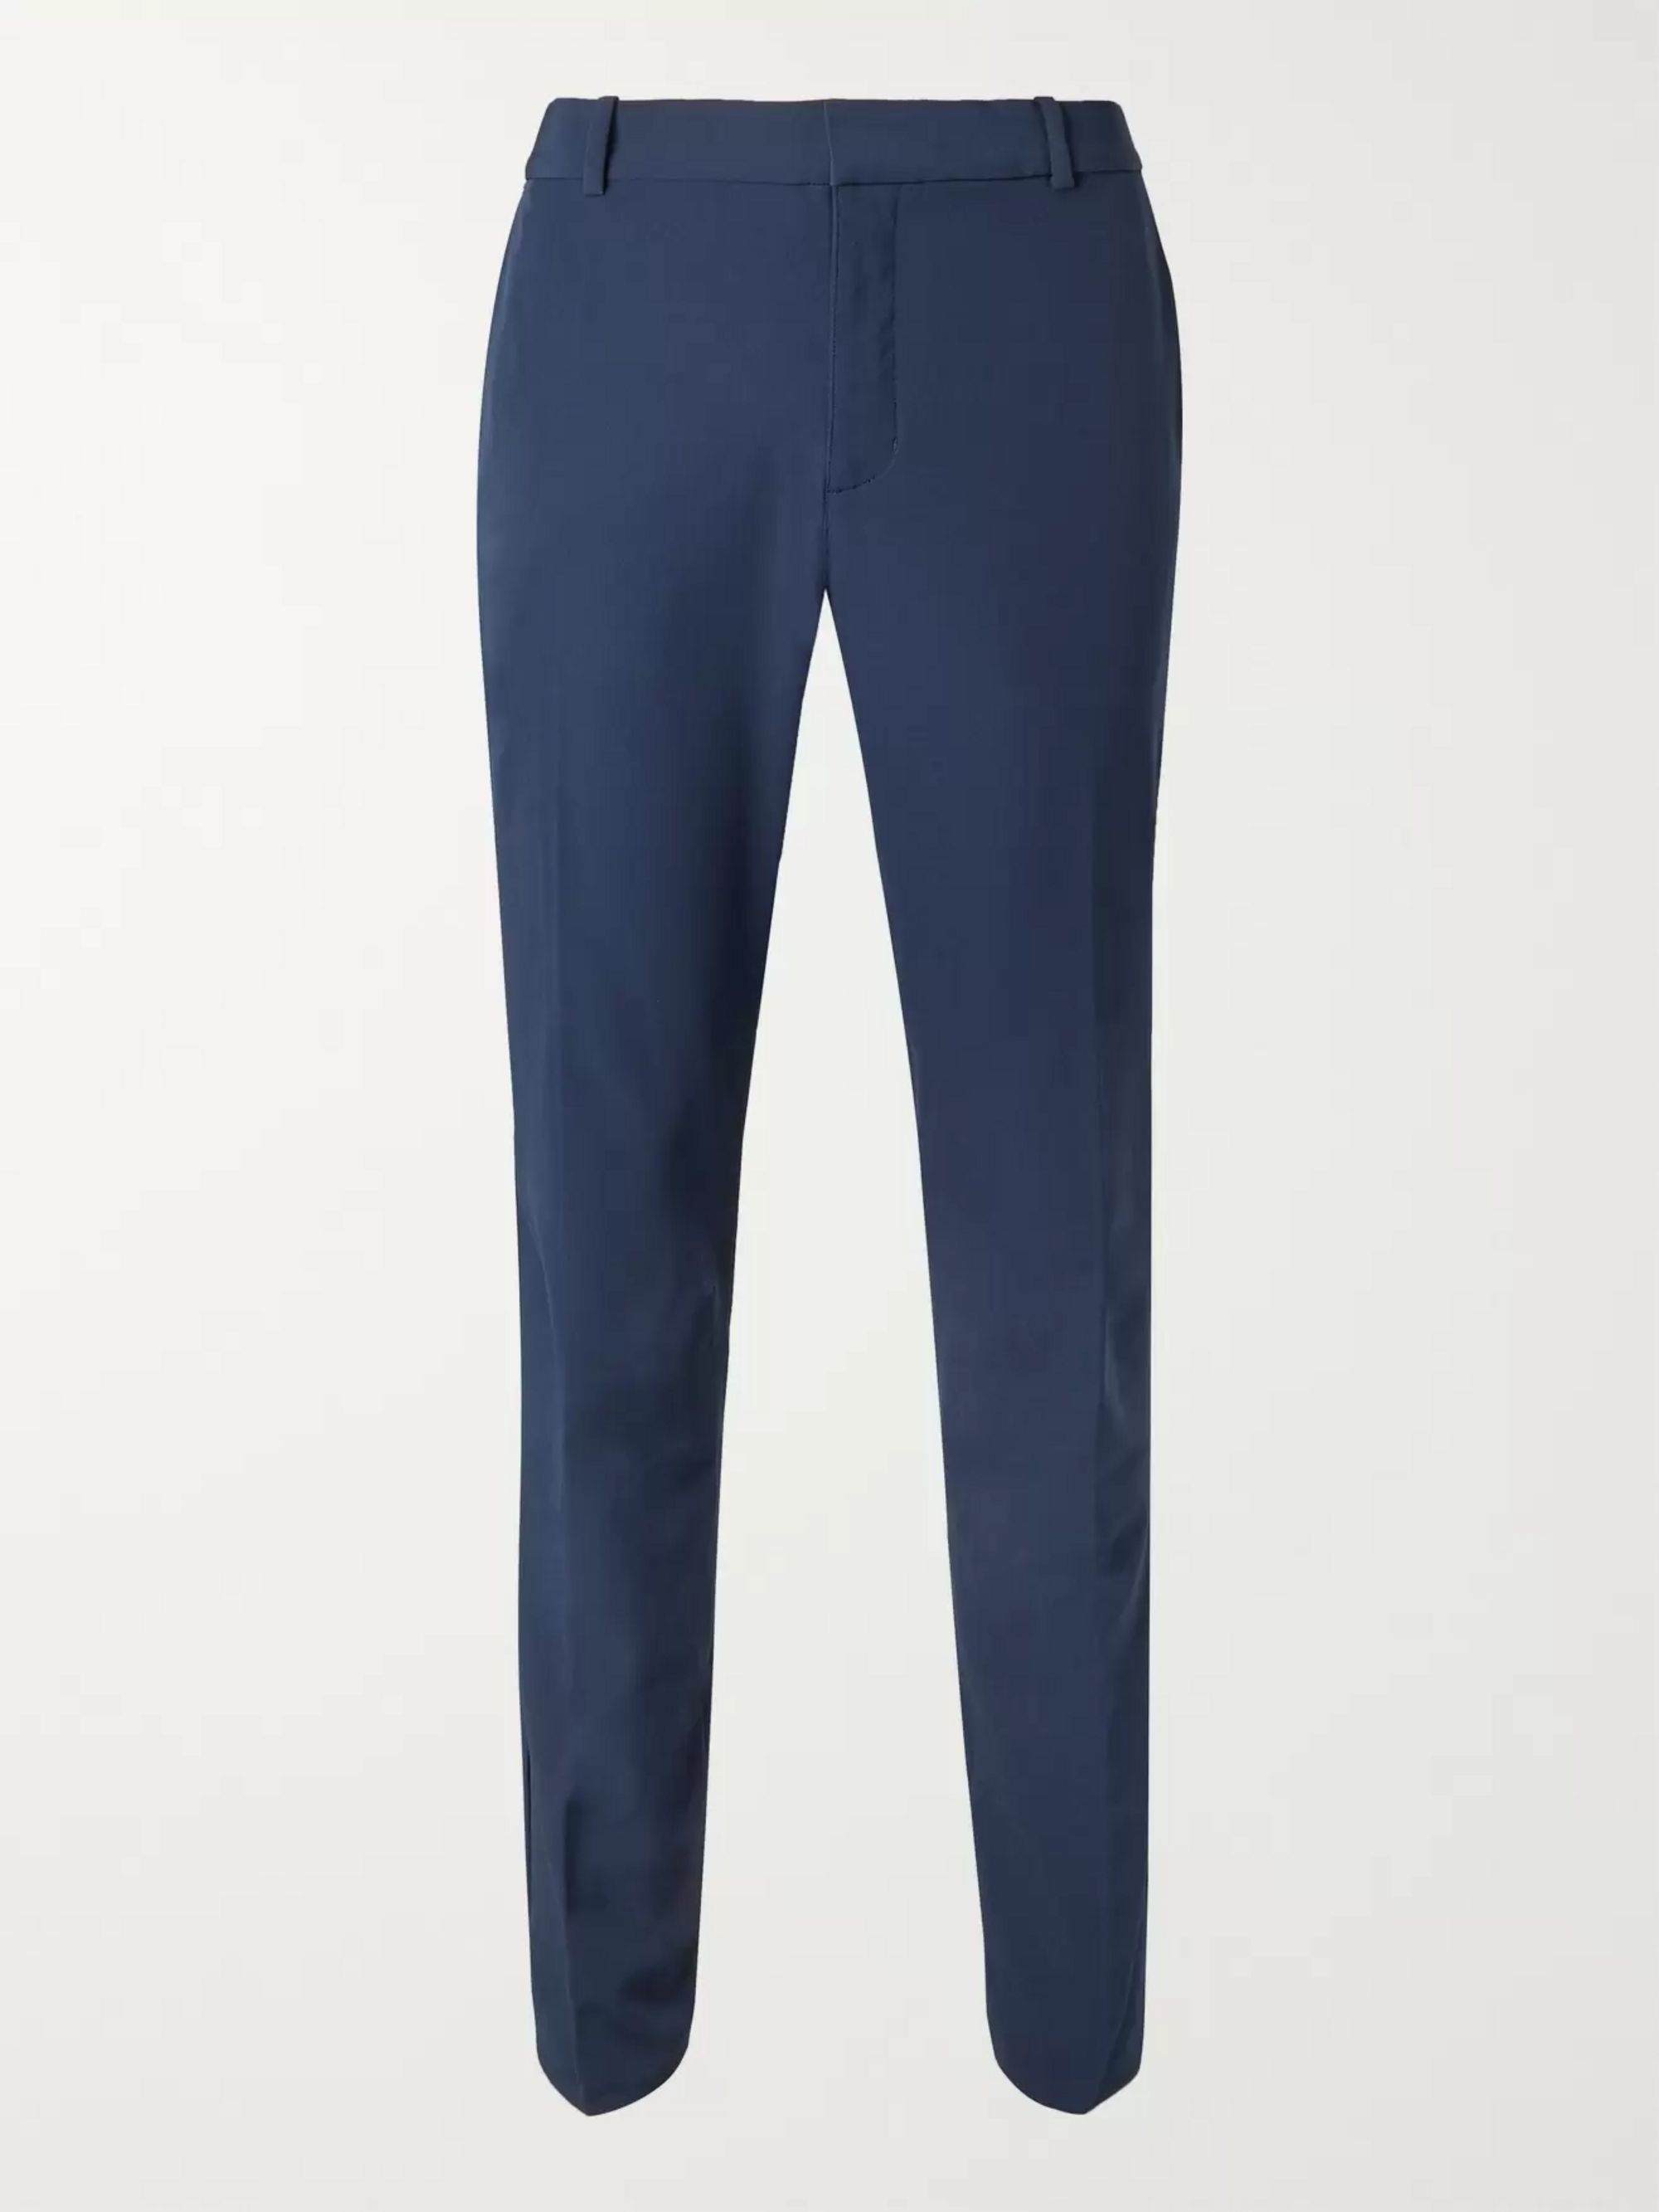 Slim Fit Dri FIT Flex Golf Trousers